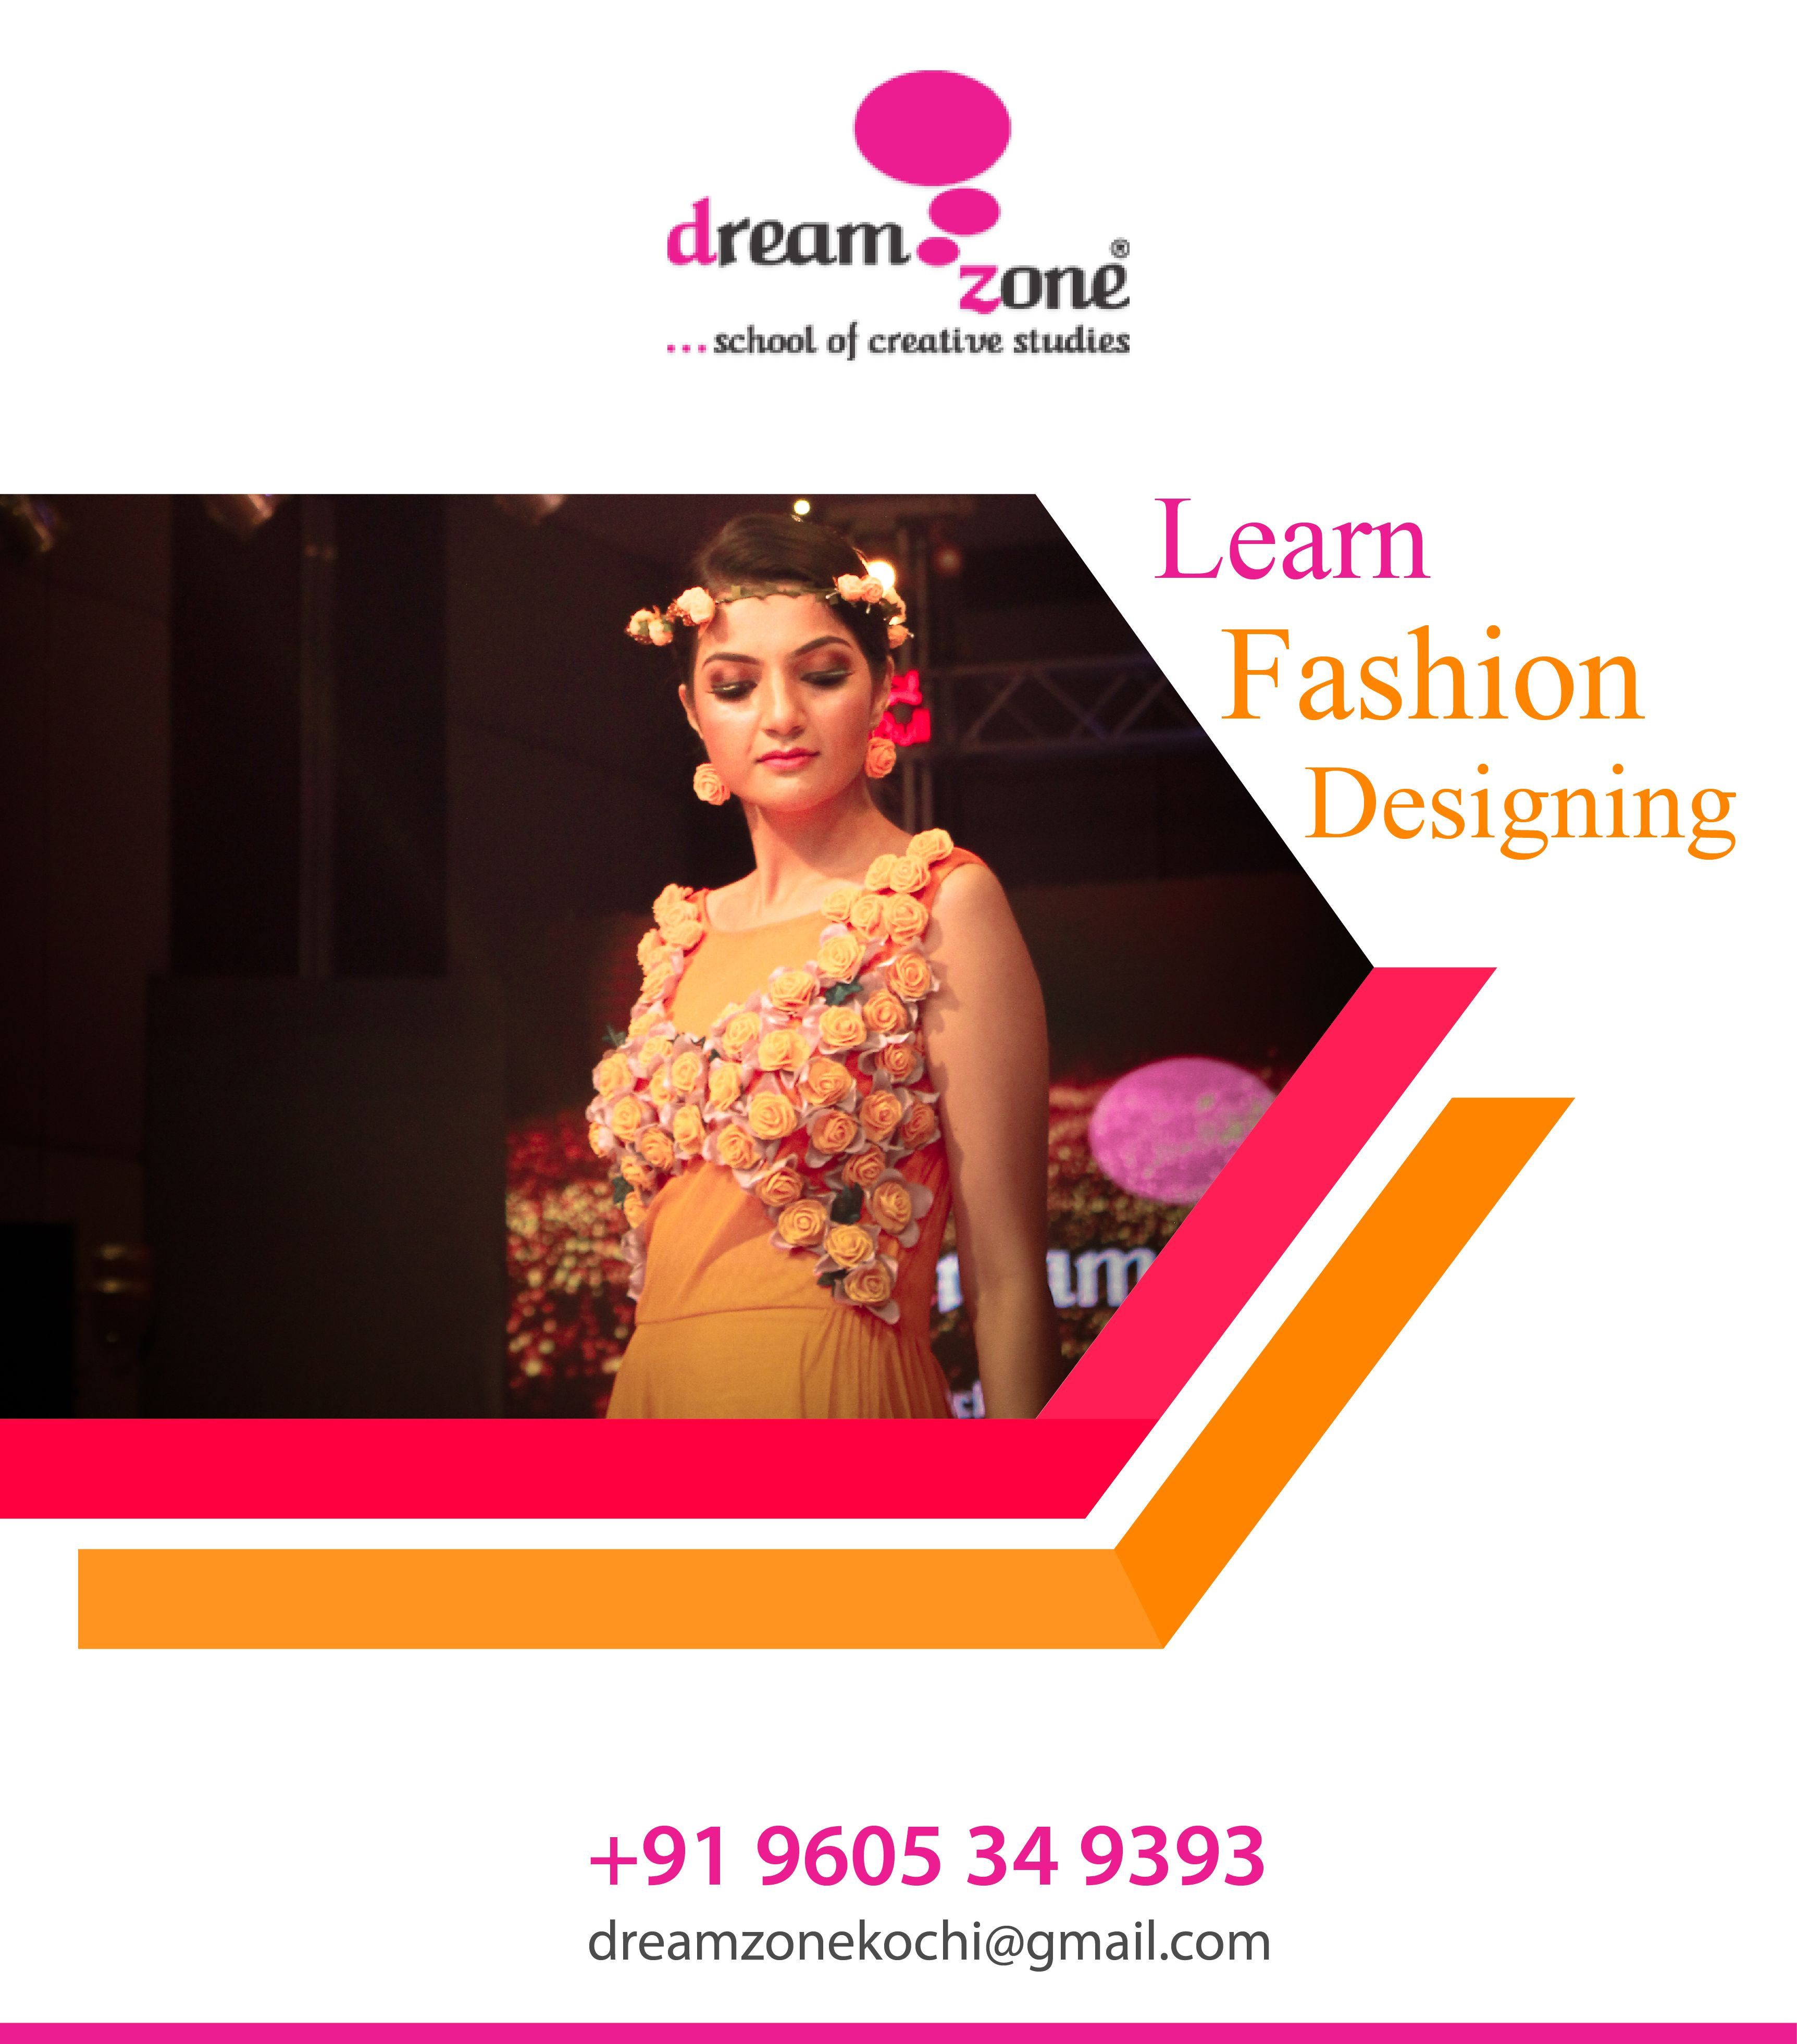 As With Any Career Fashion Design Requires Fundamental Grounding On Principles And Concepts In Order To Be S Fashion Designing Institute Design Fashion Design